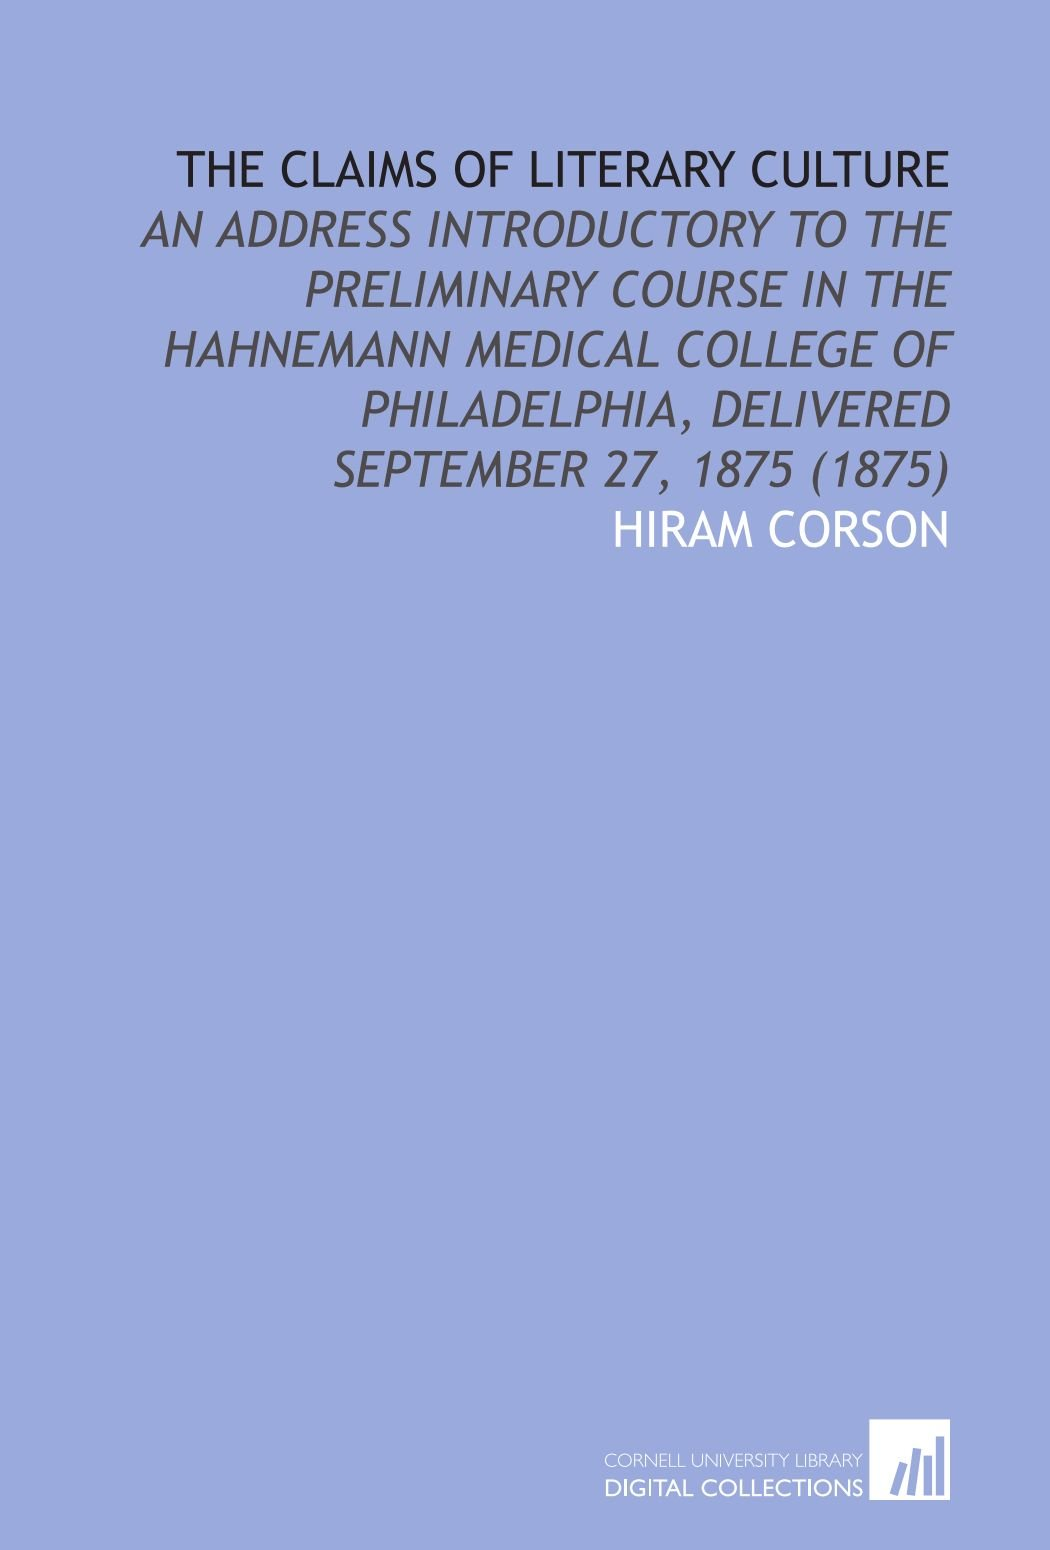 Read Online The Claims of Literary Culture: An Address Introductory to the Preliminary Course in the Hahnemann Medical College of Philadelphia, Delivered September 27, 1875 (1875) pdf epub